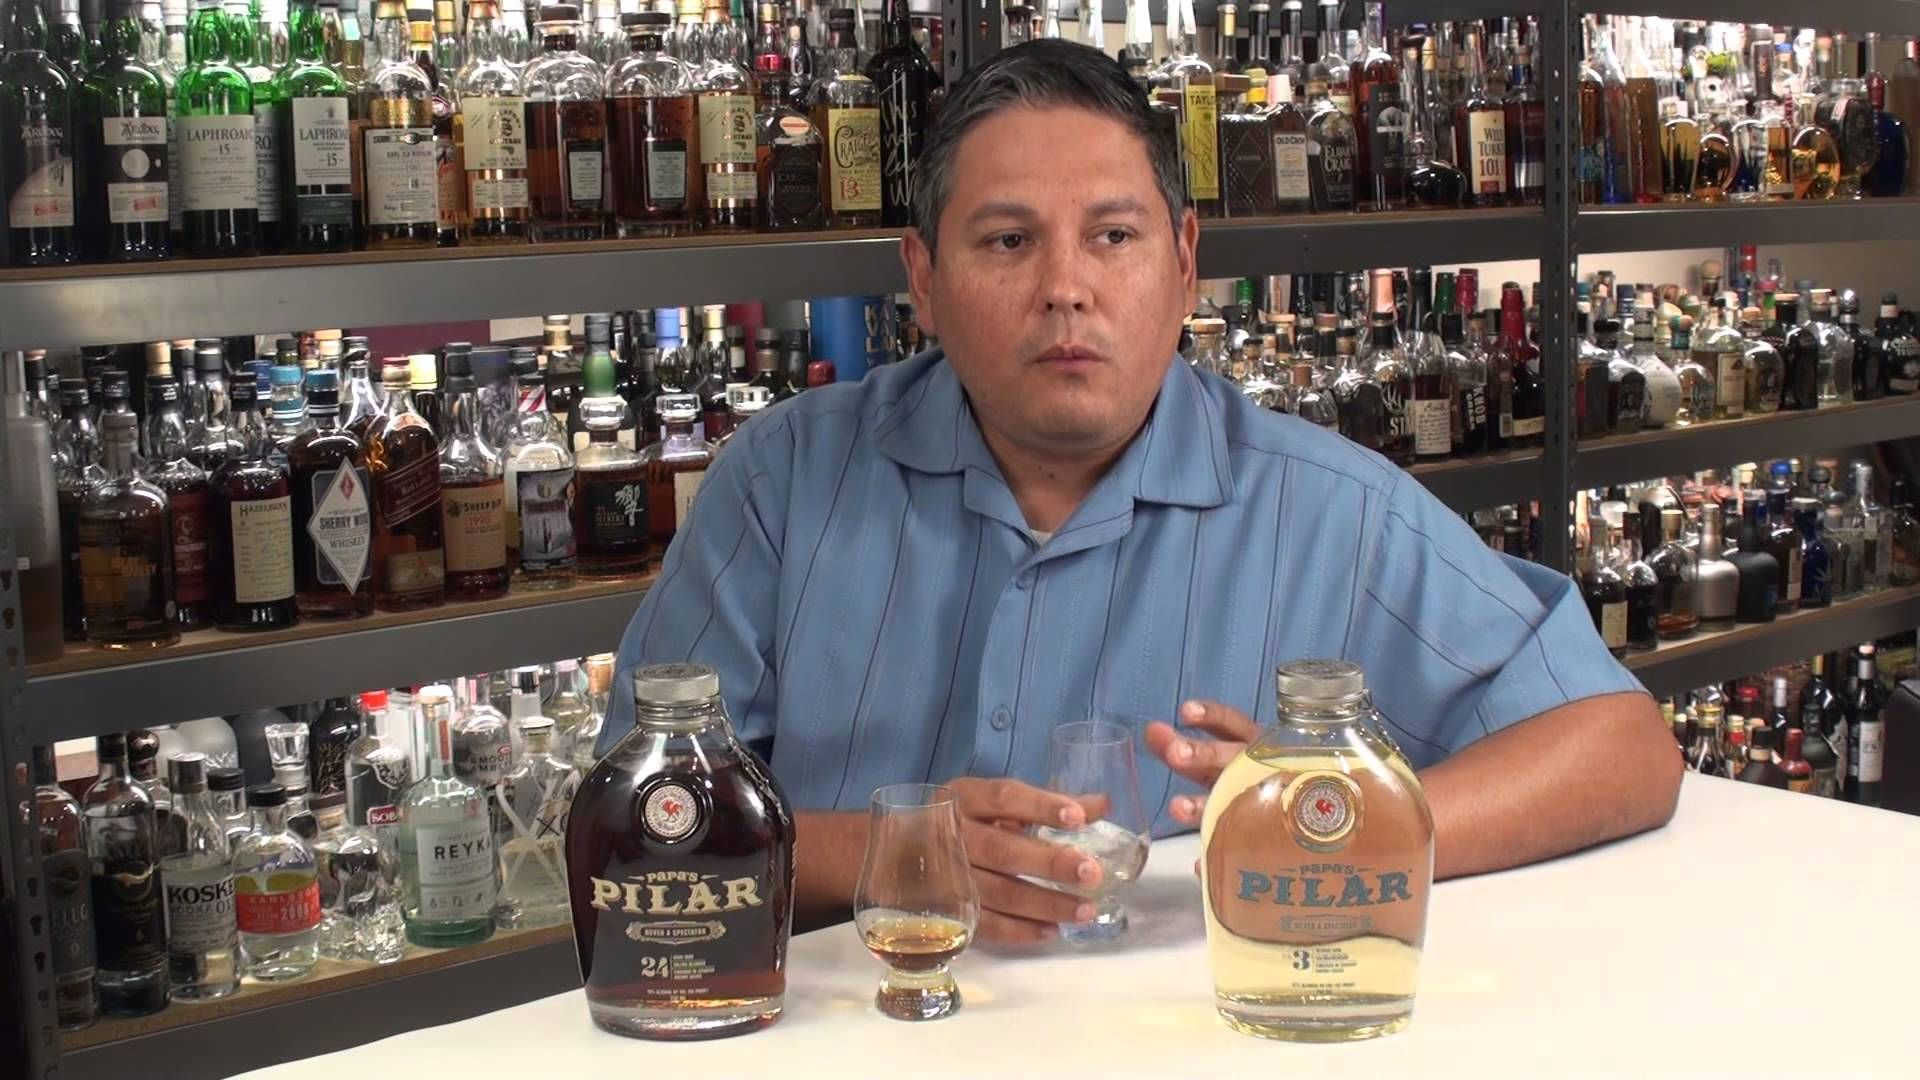 Papa's Pilar Blonde & Dark Rums Reviewed Dark rum, Rum